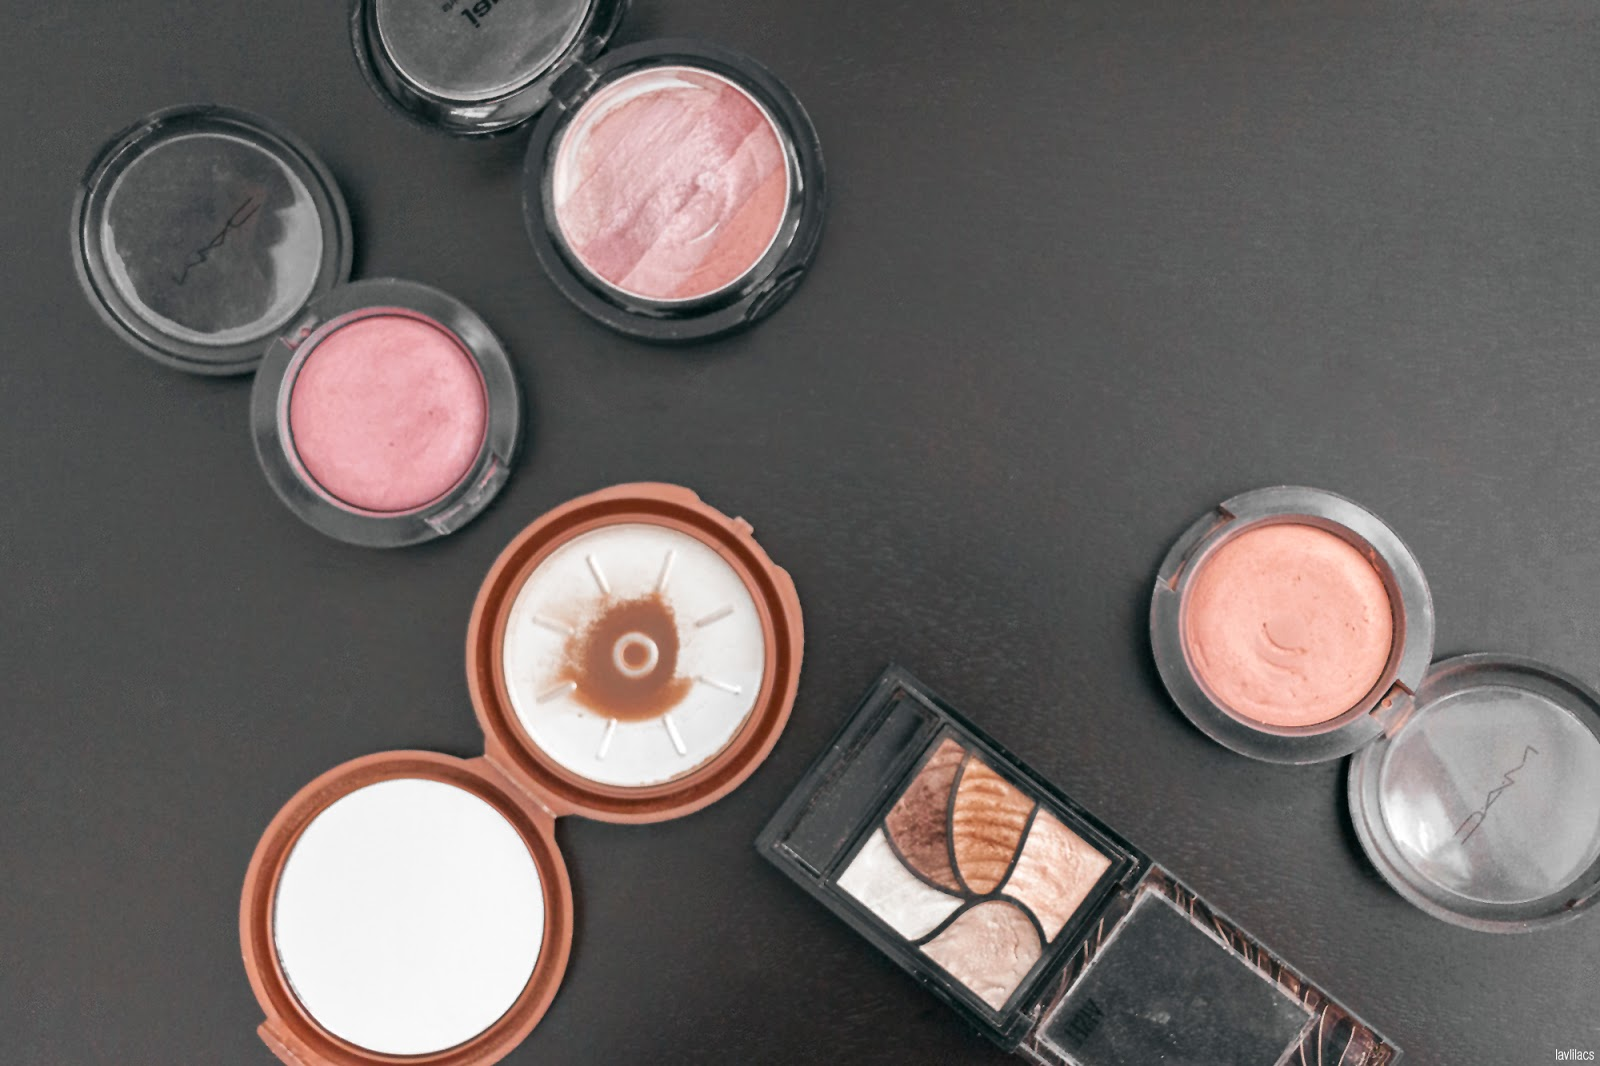 Project Make A Dent 2016 Powder makeup products - End results